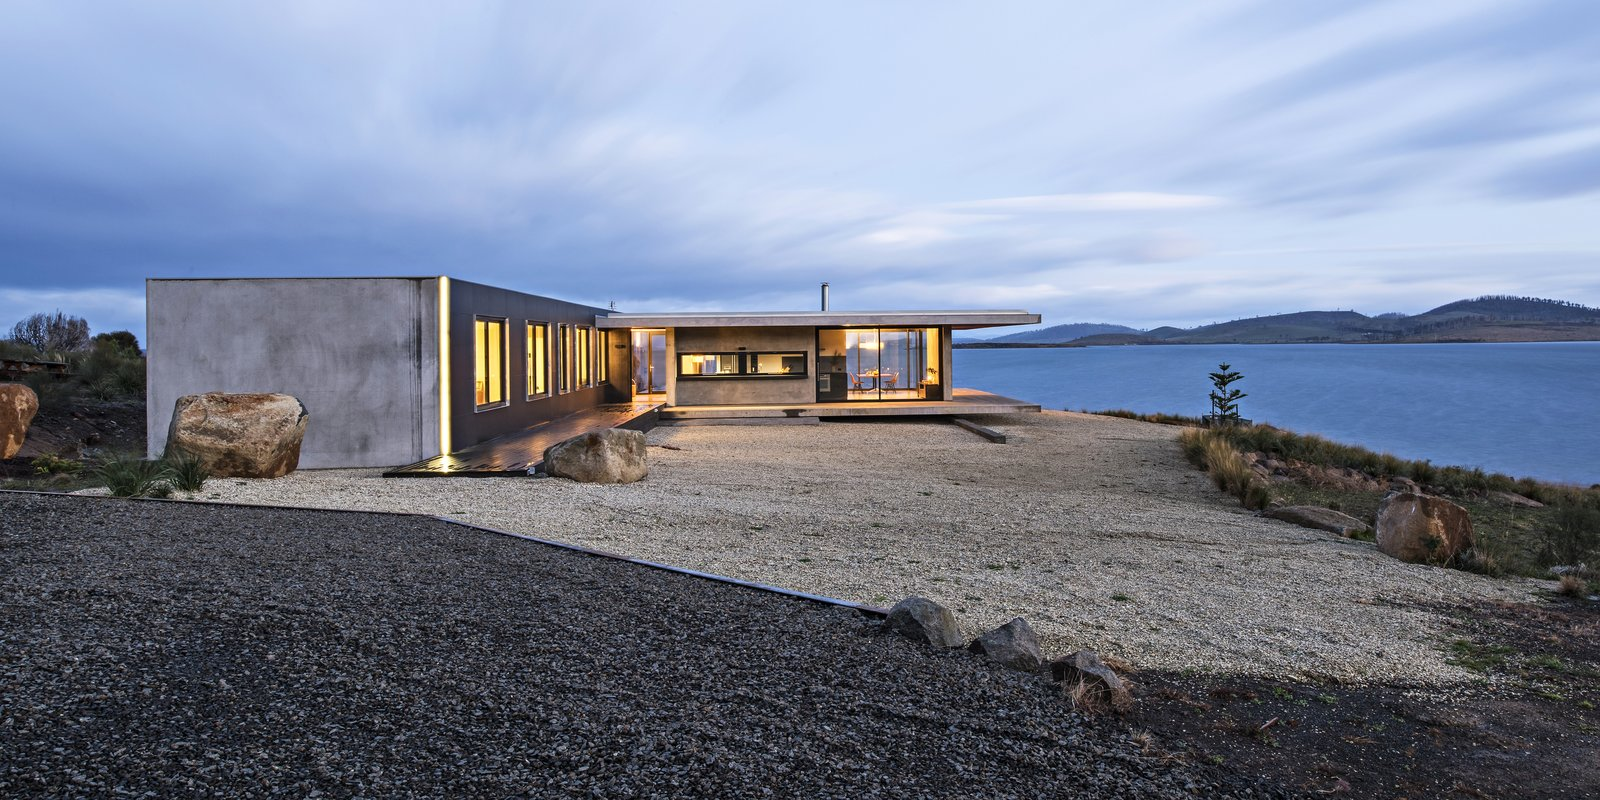 Articles about almost every part prefab beach house was brought its secluded site hand on Dwell.com